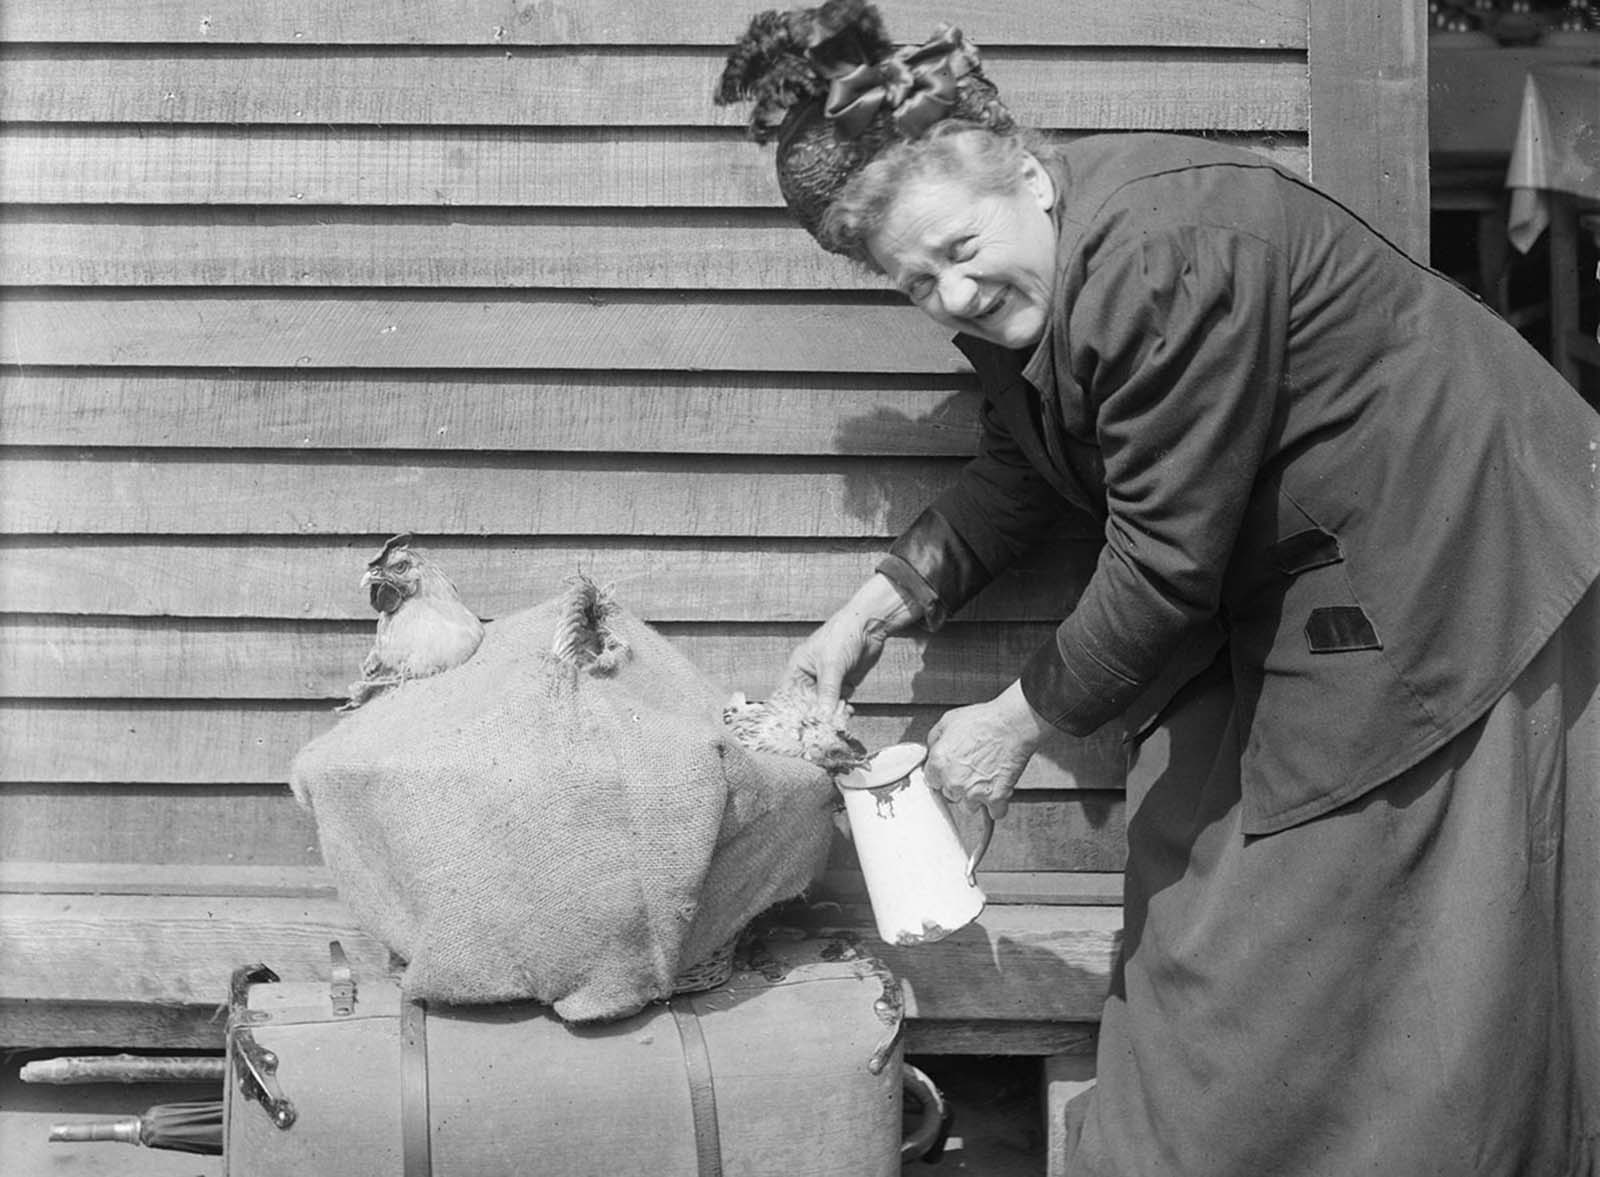 This French woman, forced by the Germans to leave her home, was able to save only a suitcase full of clothes and her two pet roosters, which she is happily feeding in front of the American Red Cross Refugee Hut at the Gare du Nord, Paris, on June 27, 1918.